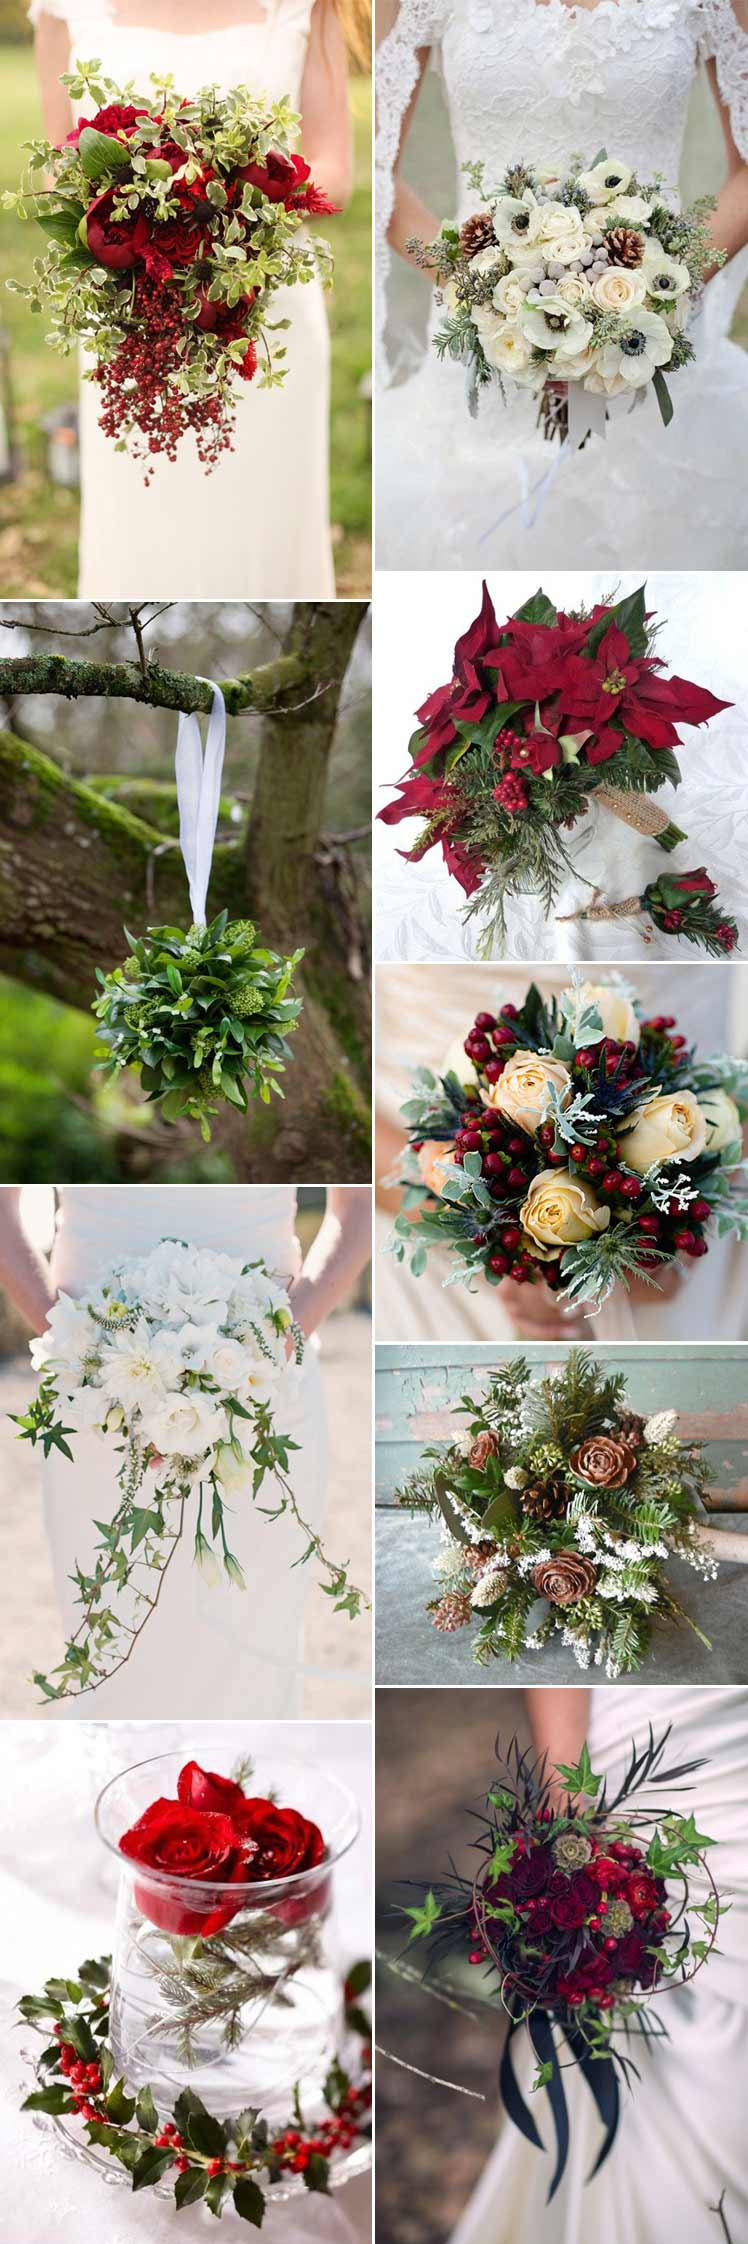 Christmas wedding flowers inspiration